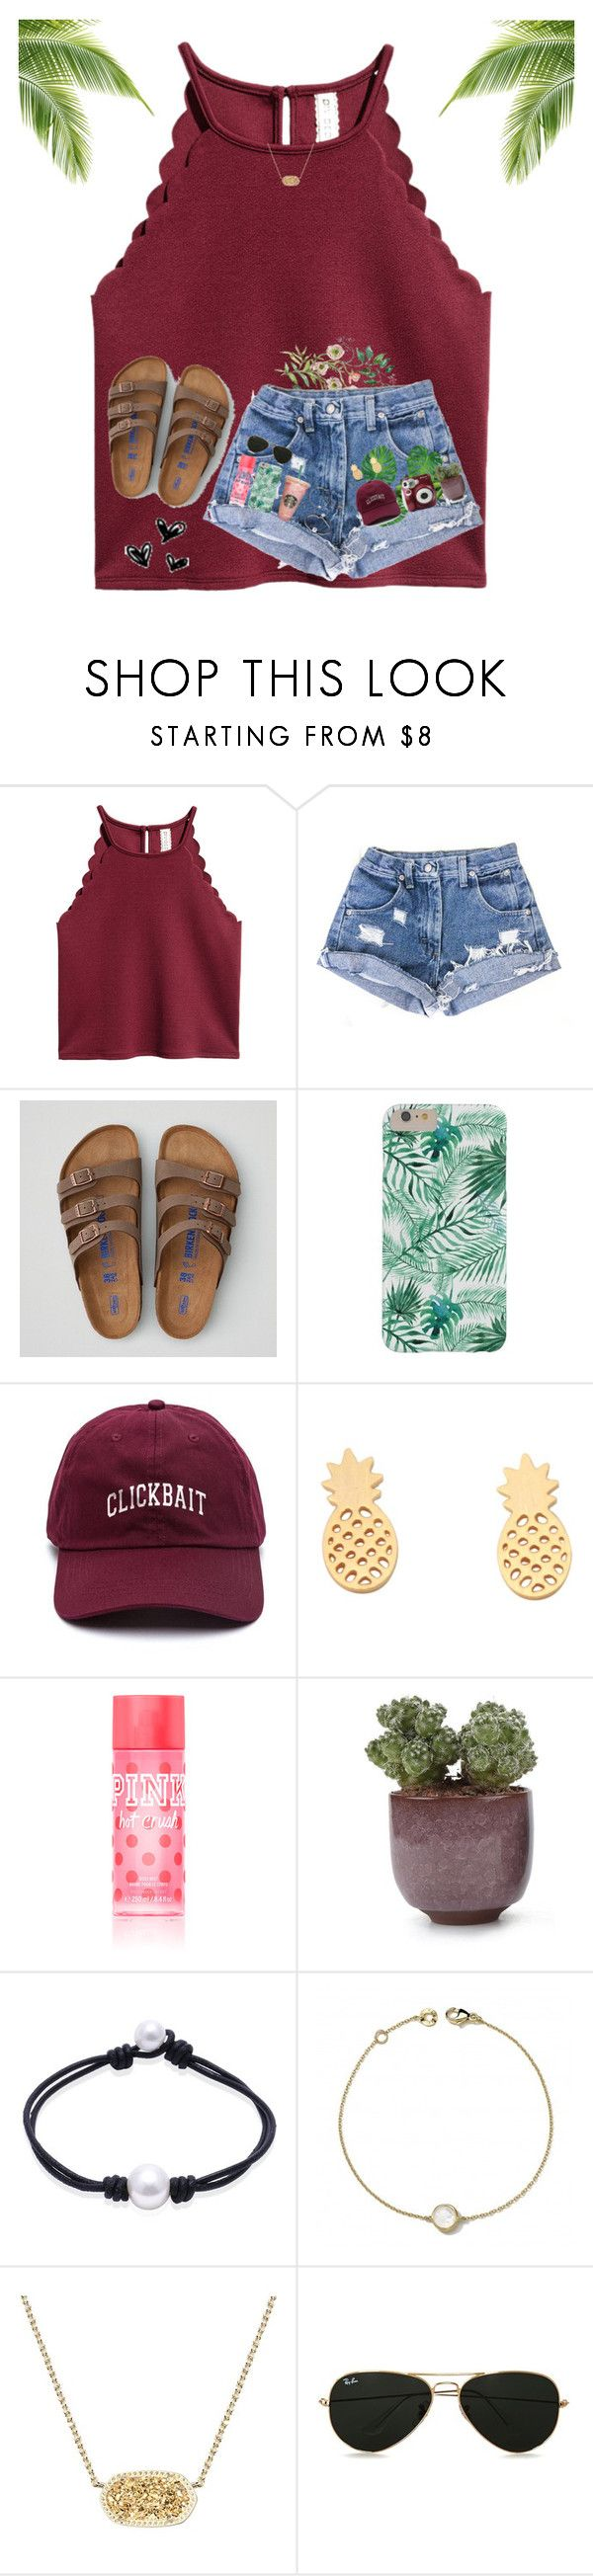 """just let it be (:"" by arieannahicks ❤ liked on Polyvore featuring American Eagle Outfitters, Victoria's Secret, Ippolita, Polaroid, Kendra Scott and Topman"